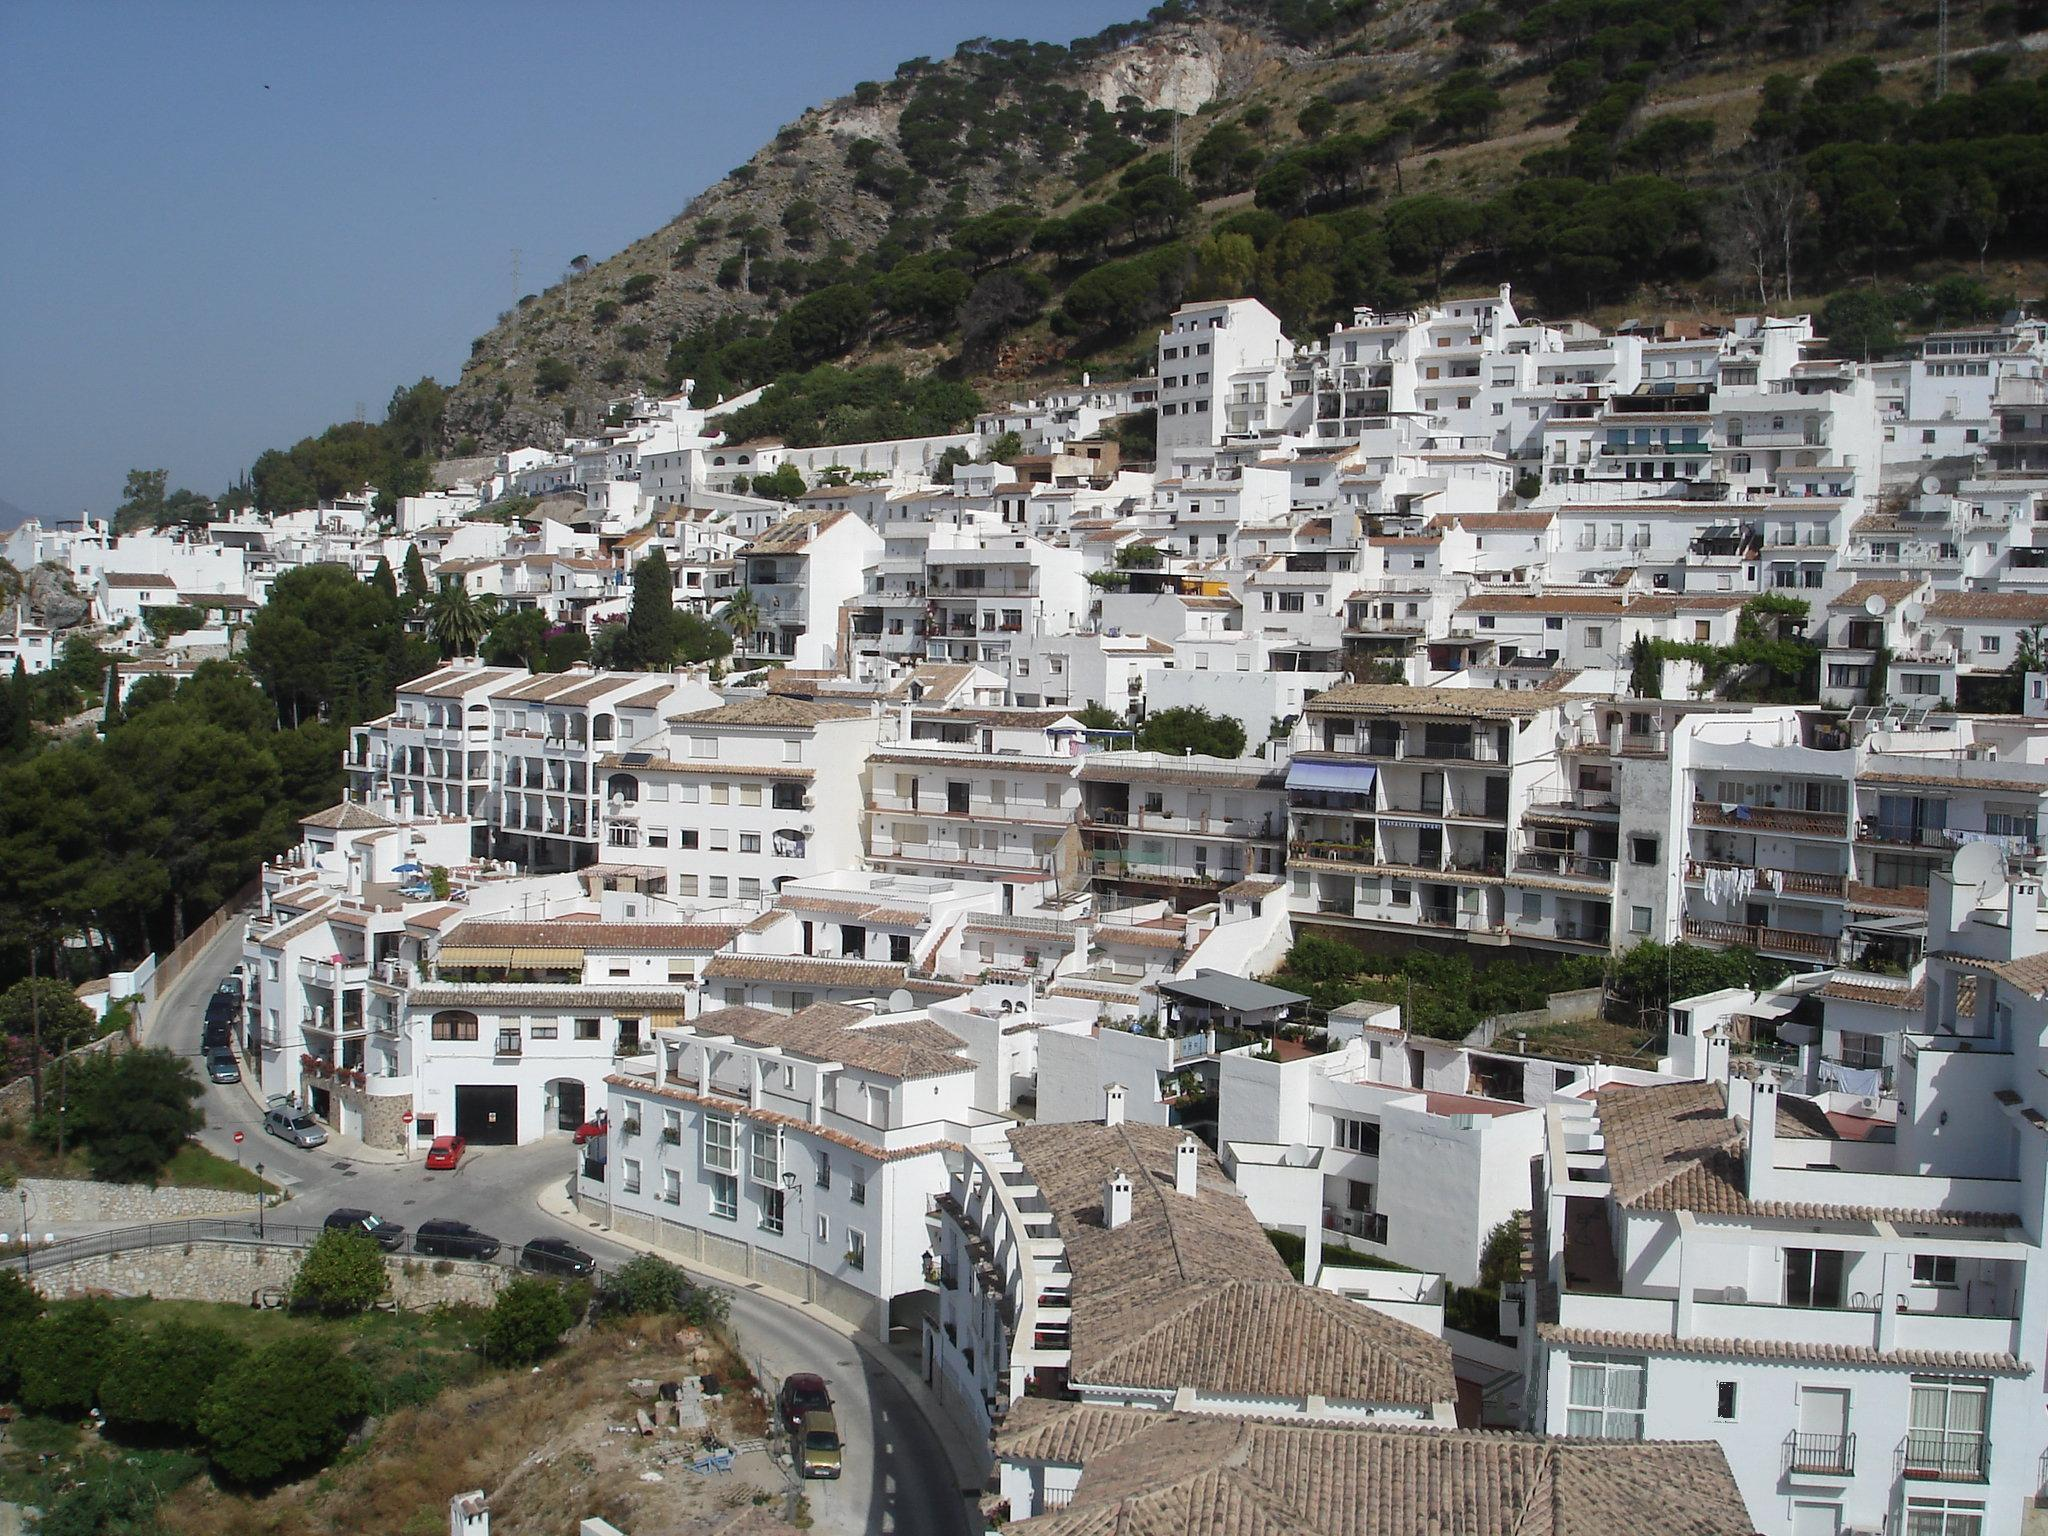 La Cala de Mijas Spain  city photo : Mijas Andalousie 1 Wikipedia, the free encyclopedia